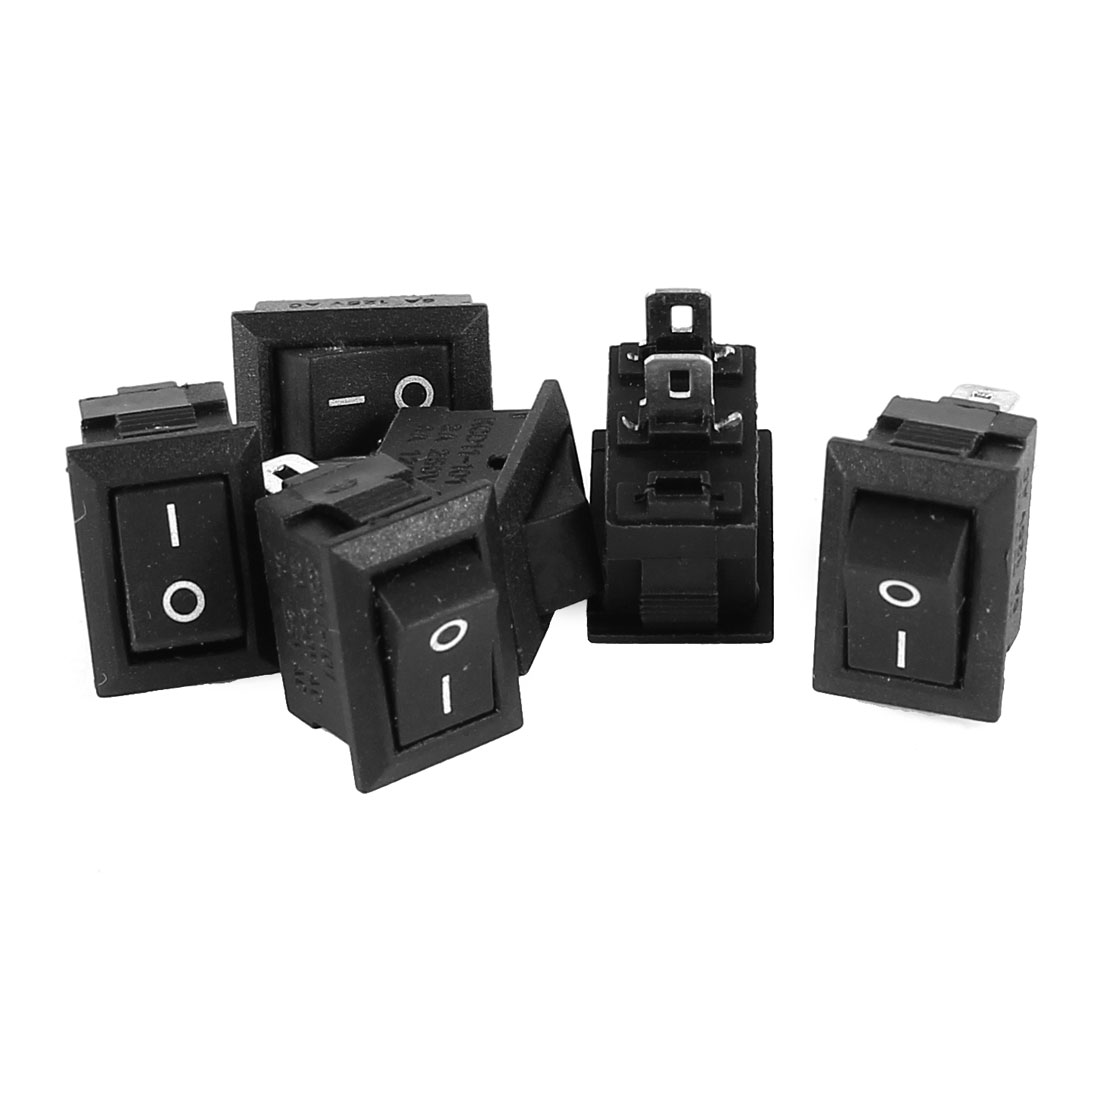 AC 250V 3A 125V 6A 2 Termials SPST ON/OFF 2 Positions Rocker Switch Black 6 Pcs